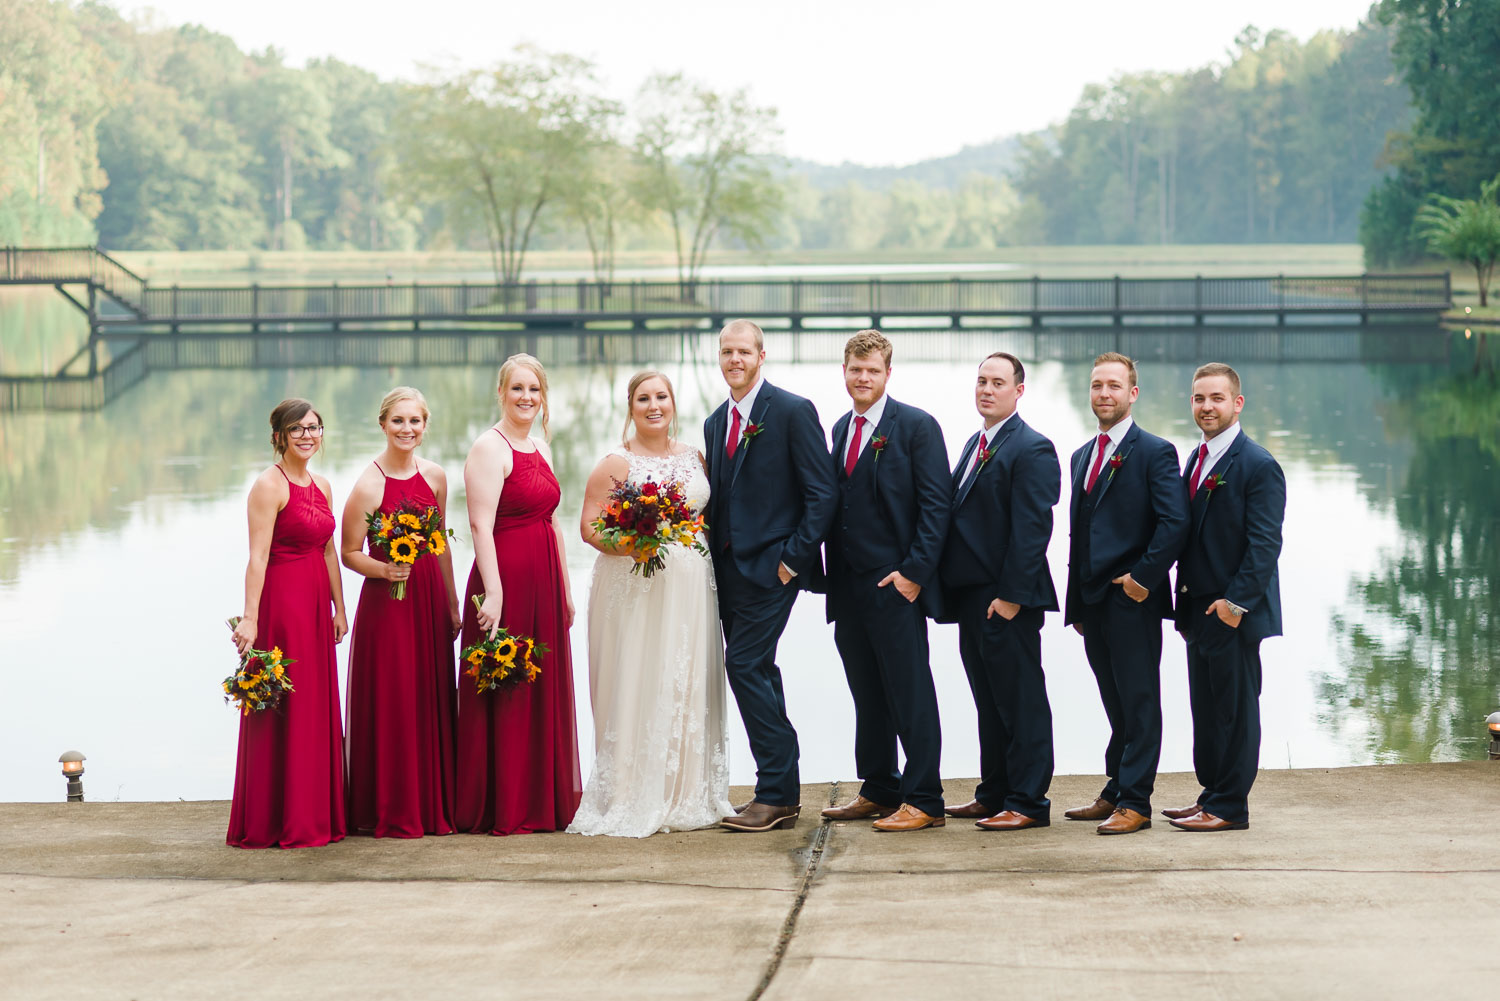 wedding party wearing navy suits and red dresses in front of lower pond at Indigo Falls venue in Dallas GA